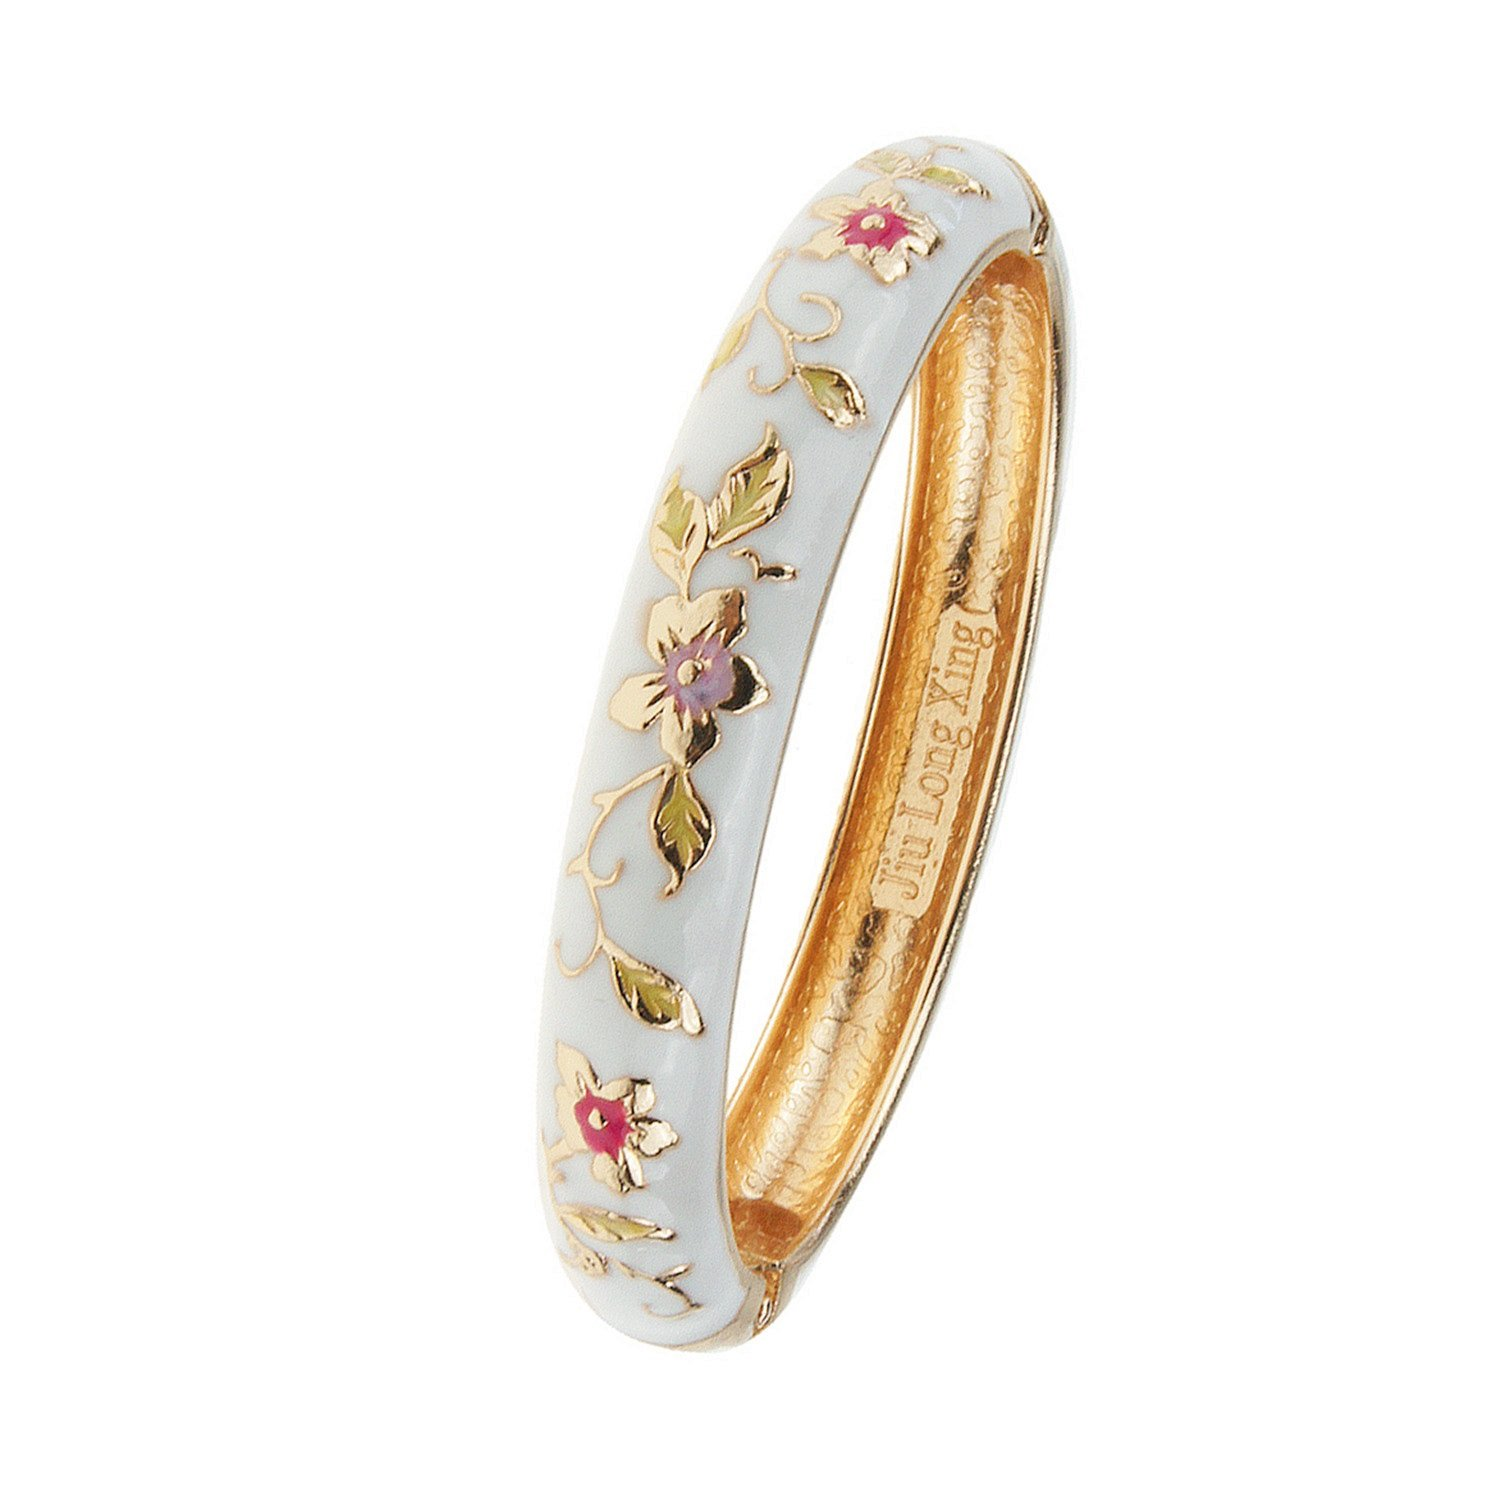 UJOY Vintage Bracelet Colorful Cloisonne Jewelry Gift Women Girls Hinge Enameled Bangles Bracelets 55A82 white